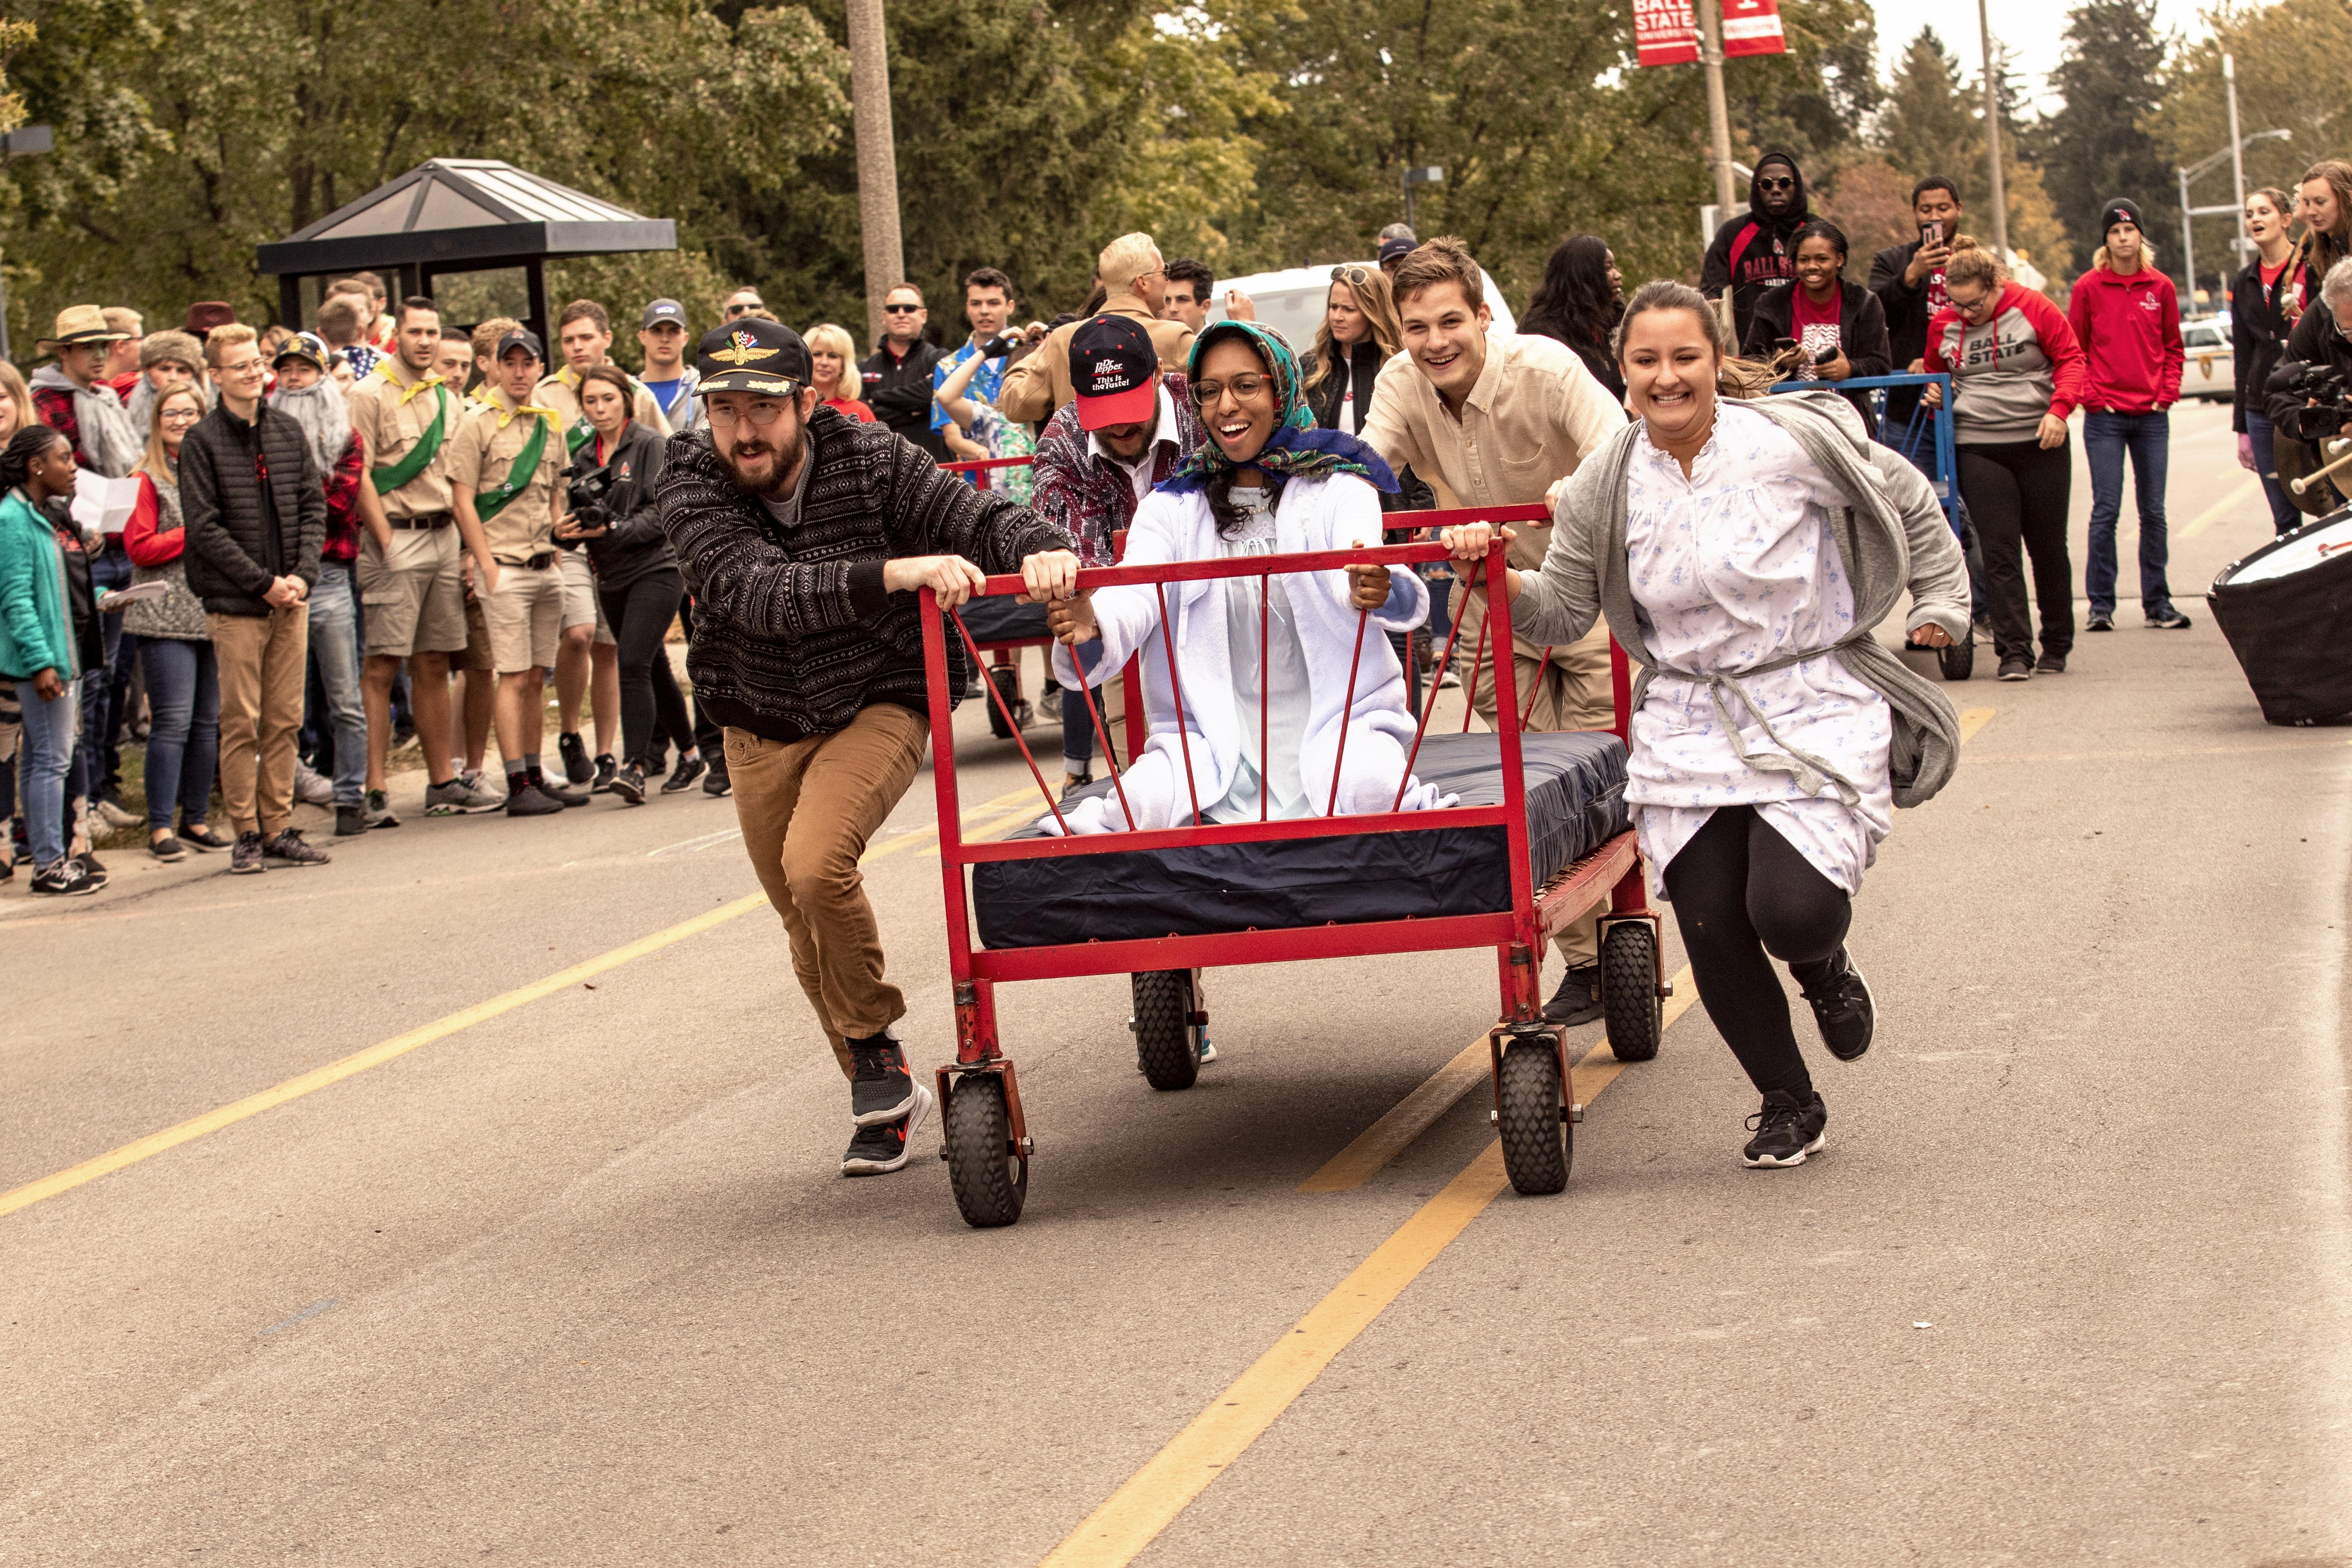 Students participating in bed races during Homecoming 2018